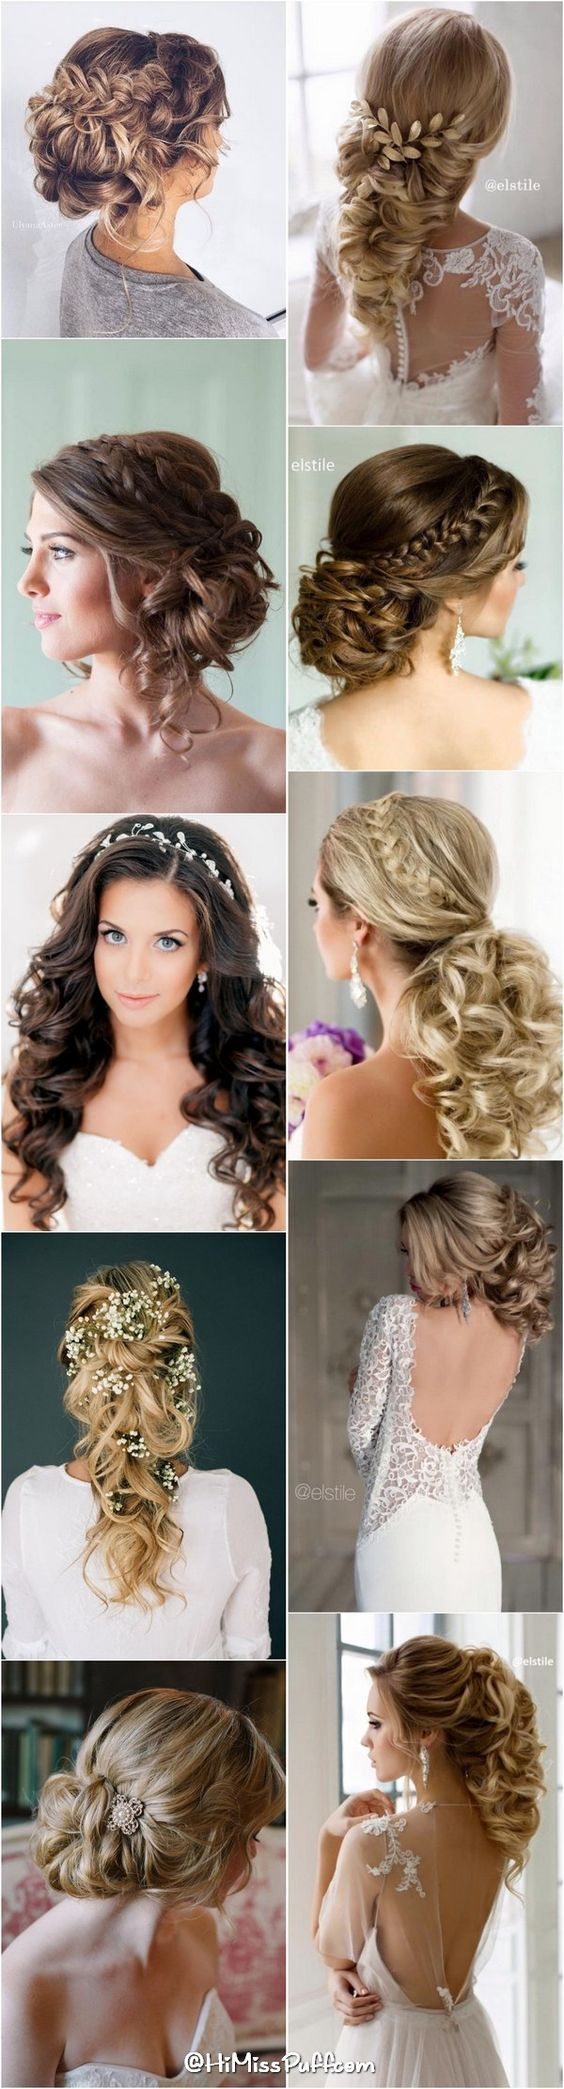 20 Trendy Alternative Haircuts Ideas for Women Amazingly Pretty Bridal Hairstyle Inspirations - Trend To Wear